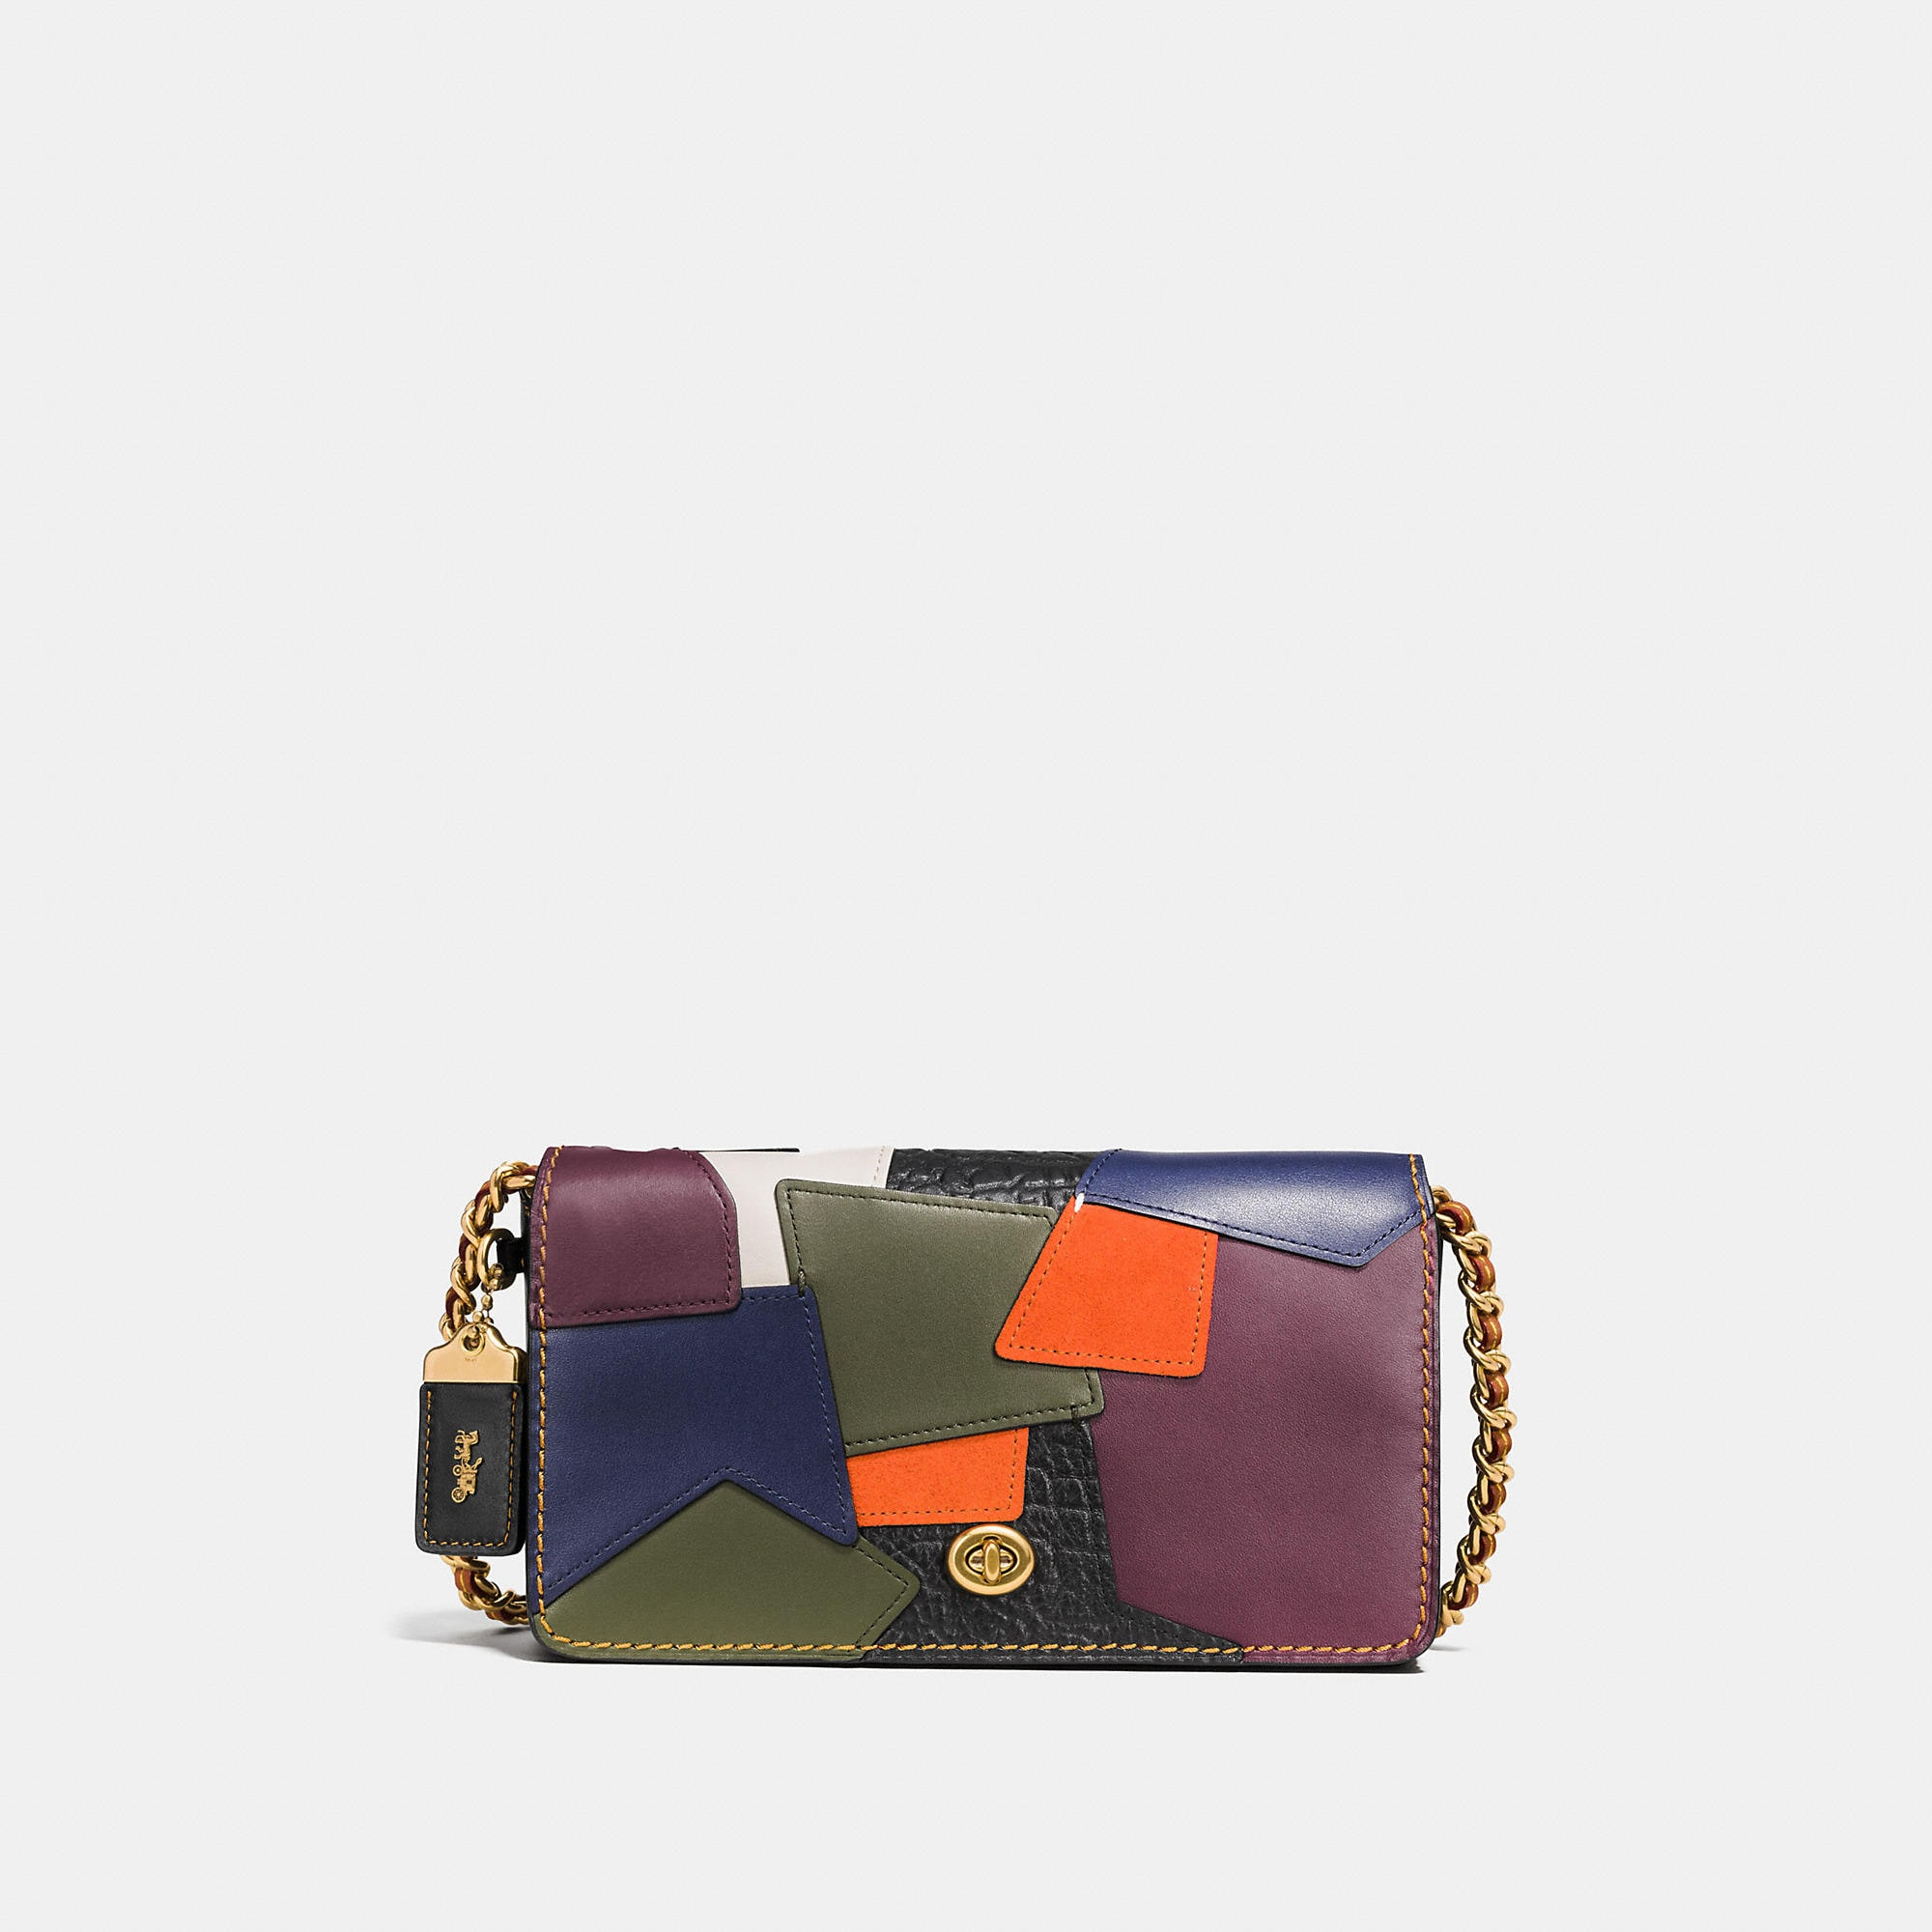 Coach 1941 Dinky Crossbody In Patchwork Leather